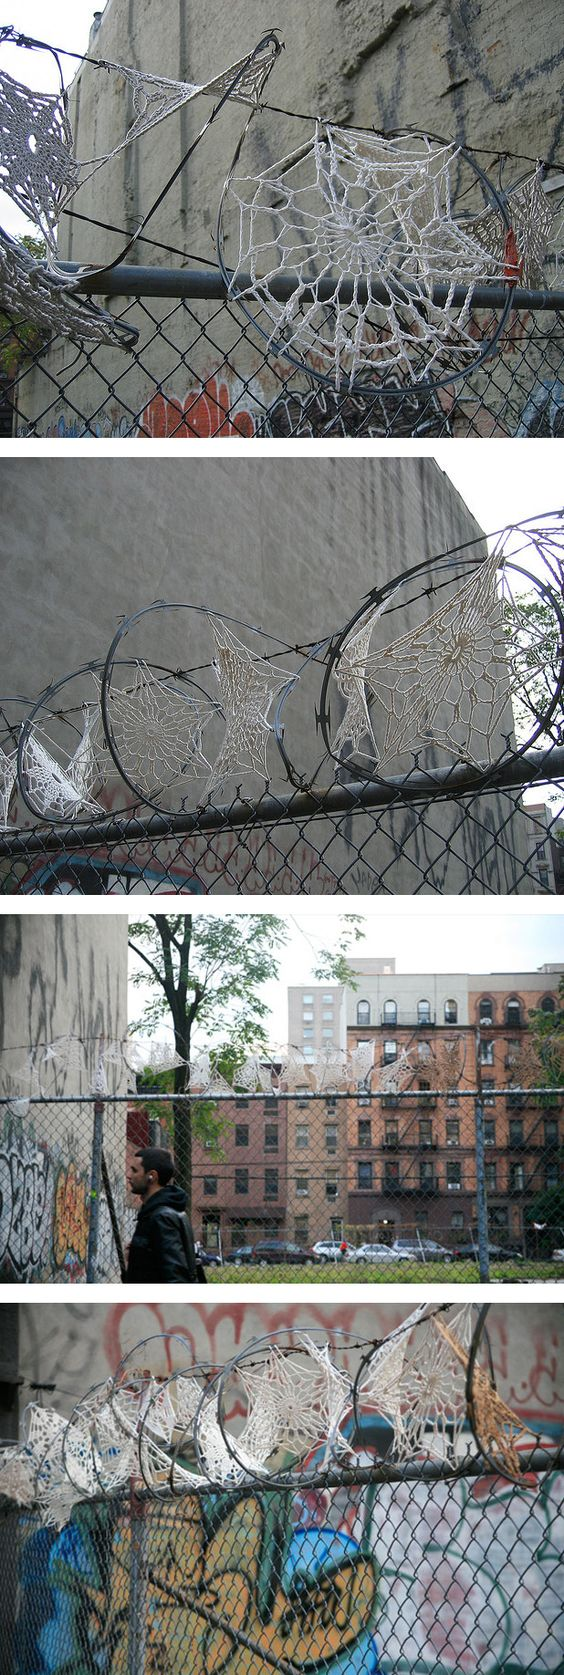 Invasive crochet: Lace doilies on razor wire - Imgur: